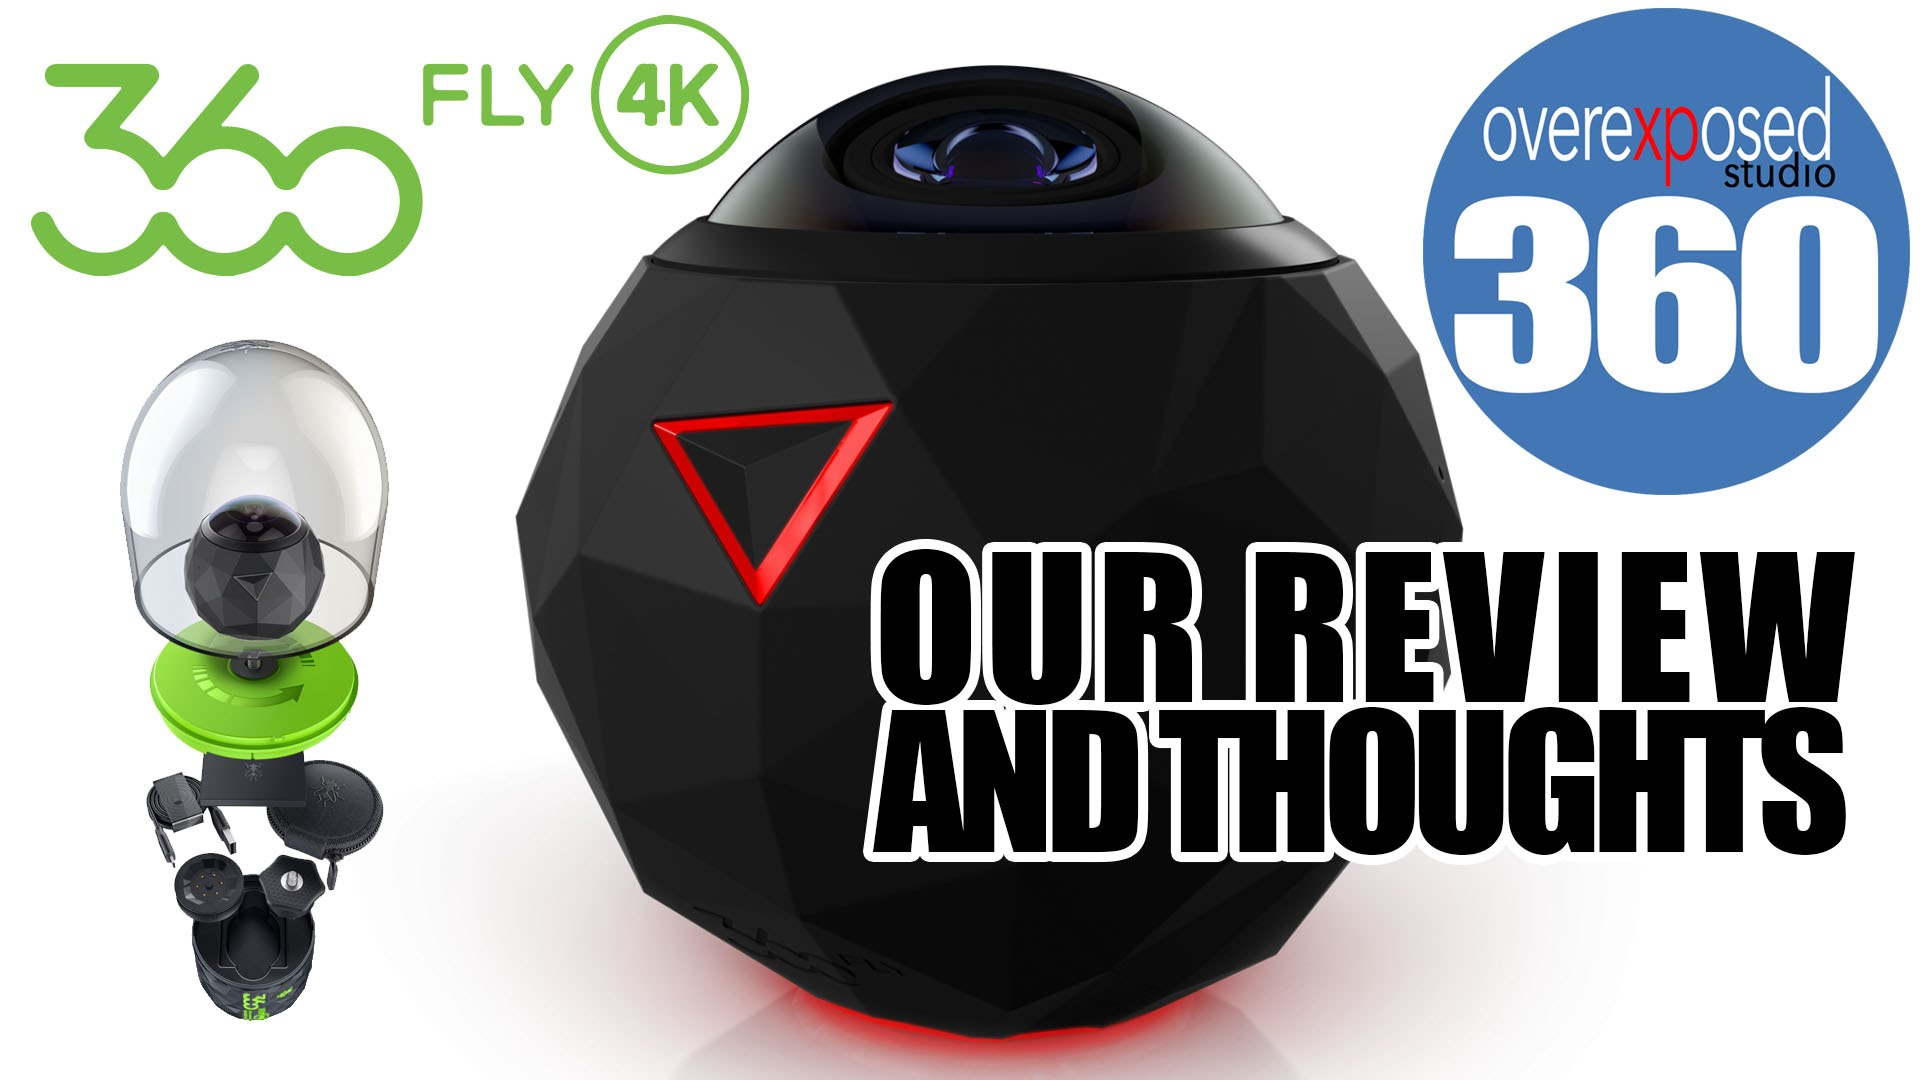 360FLY 4K Review and Thoughts